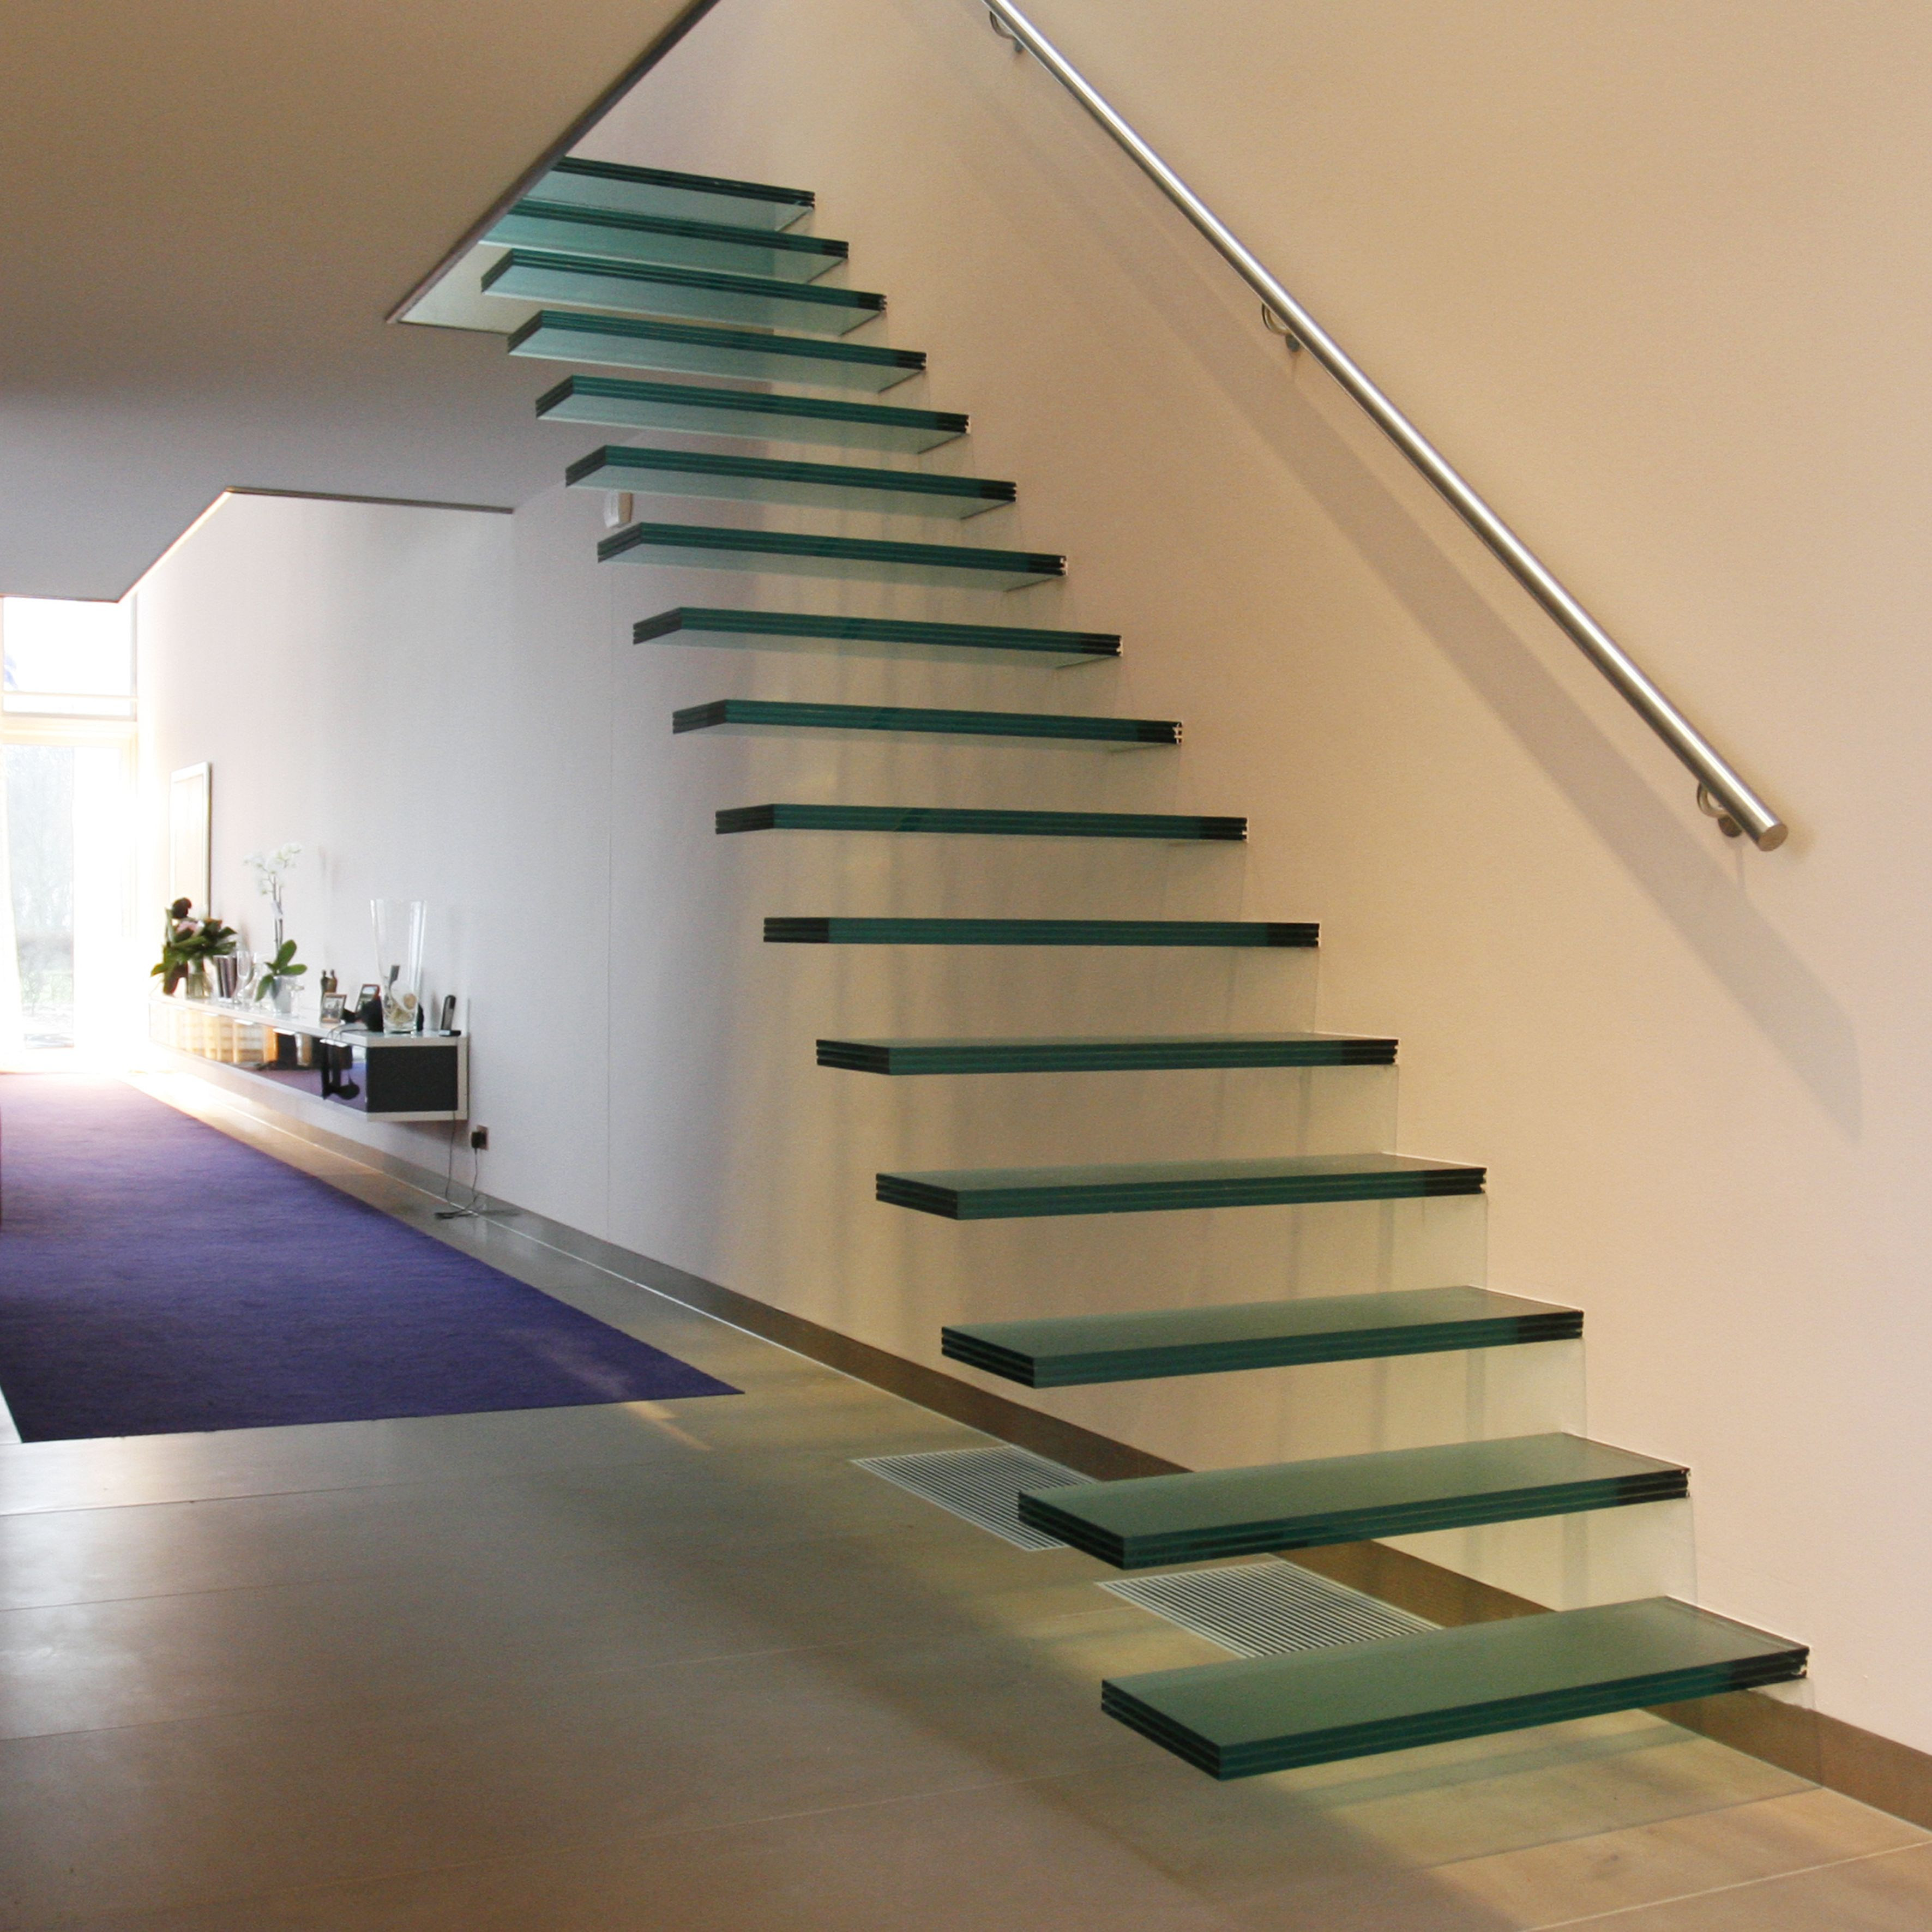 Floating Glass Staircase By EeStairs   Hidden Support System, With Stair  Treads Projecting Straight Out Of The Wall.